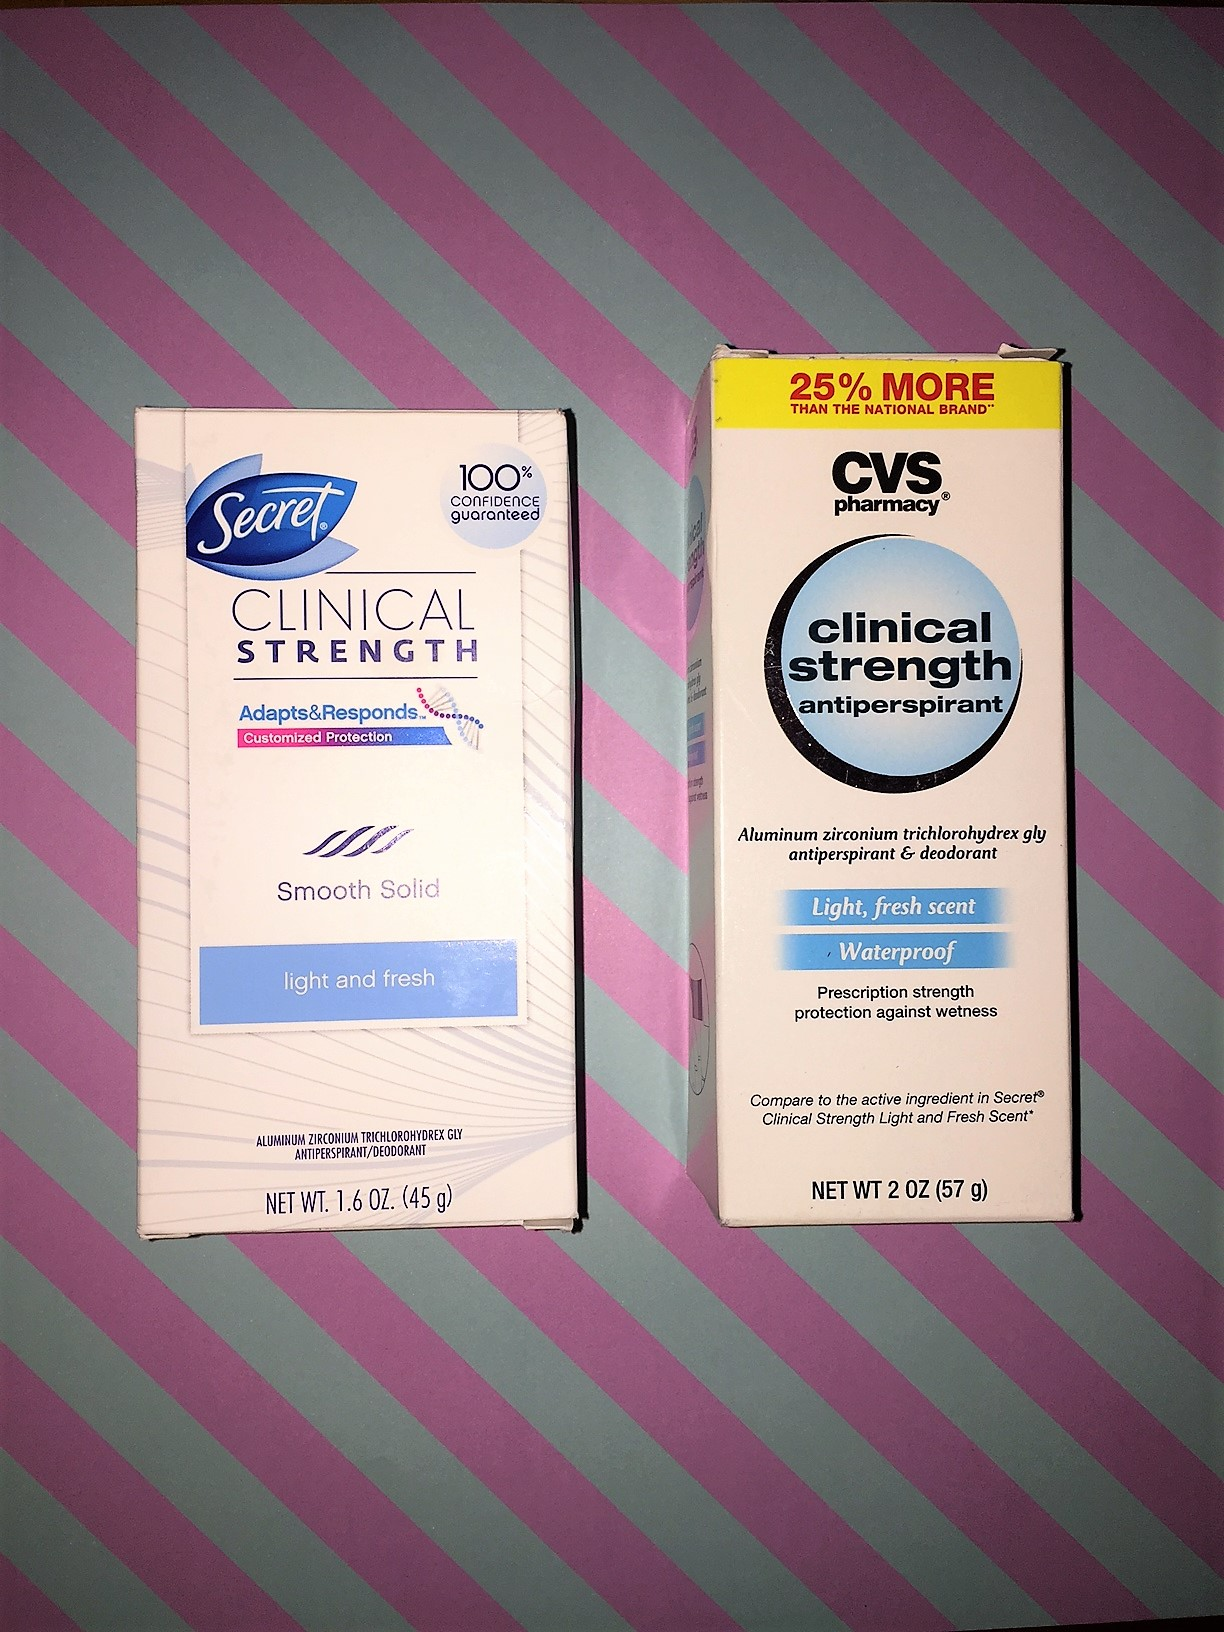 We recommend sticking with Secret in this case because the CVS Clinical Strength did not work as well and became gritty with wear.